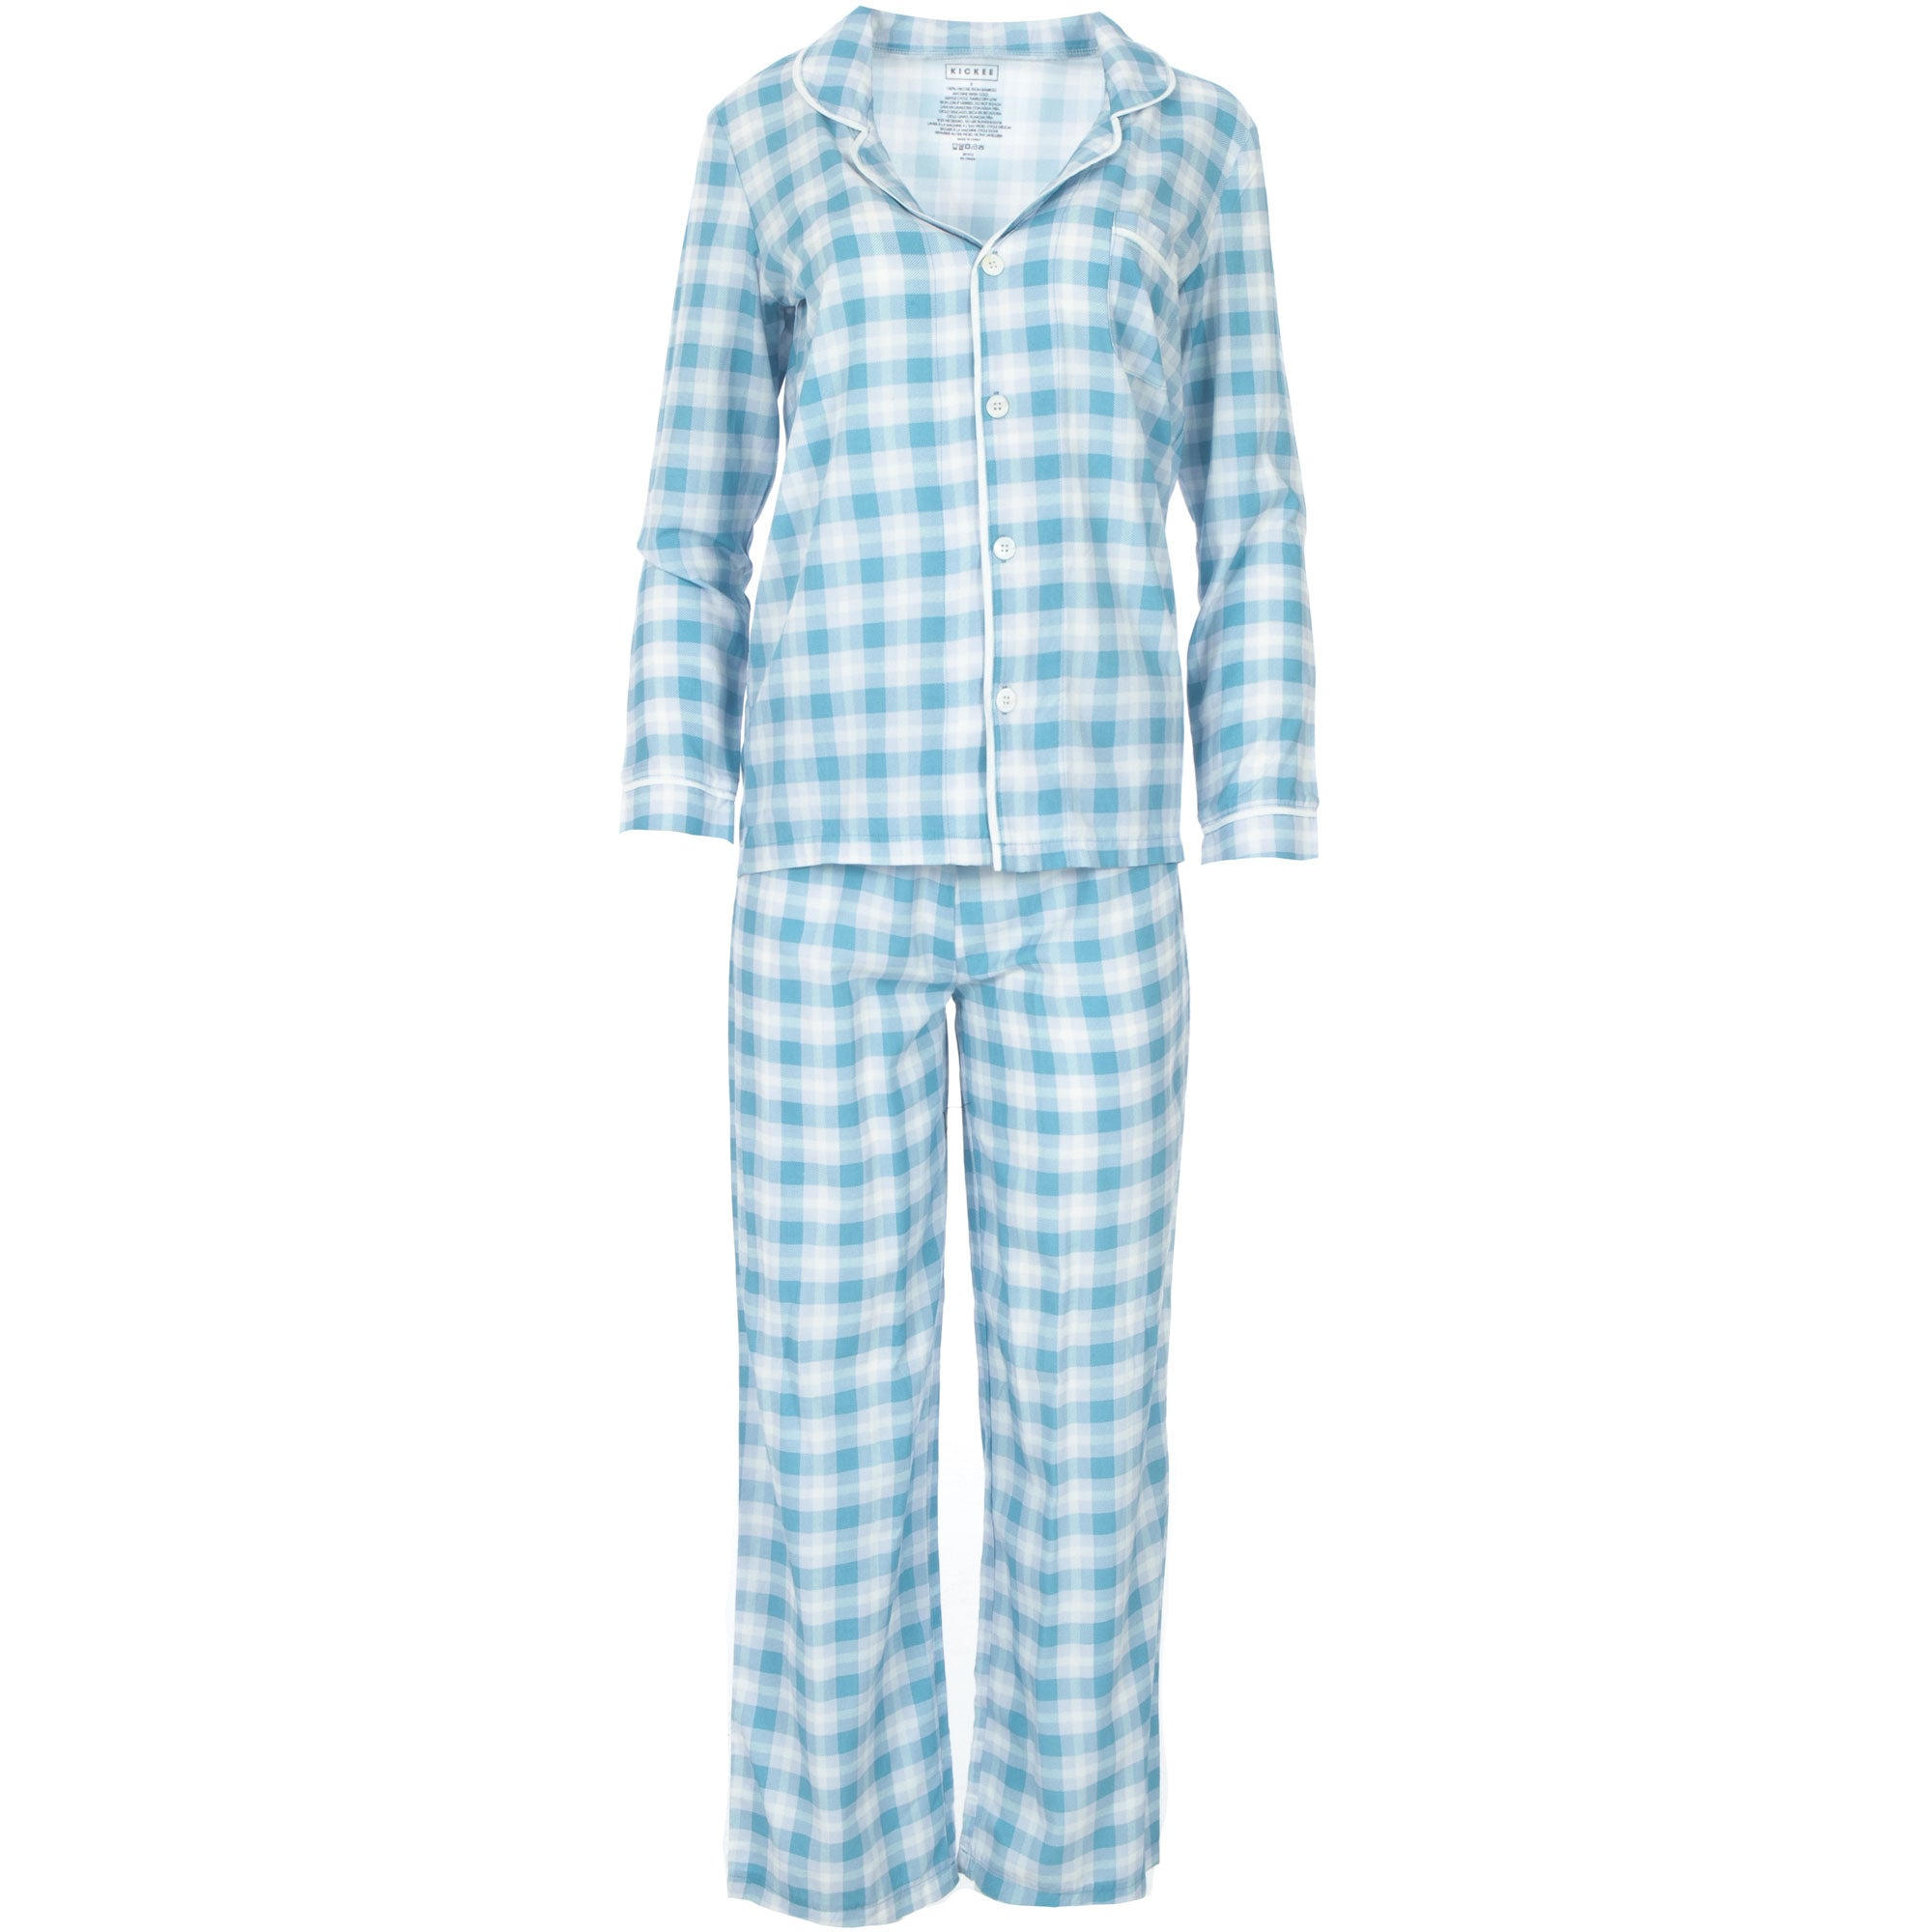 KicKee Pants Womens Collared Pajama Set - Blue Moon 2020 Holiday Plaid